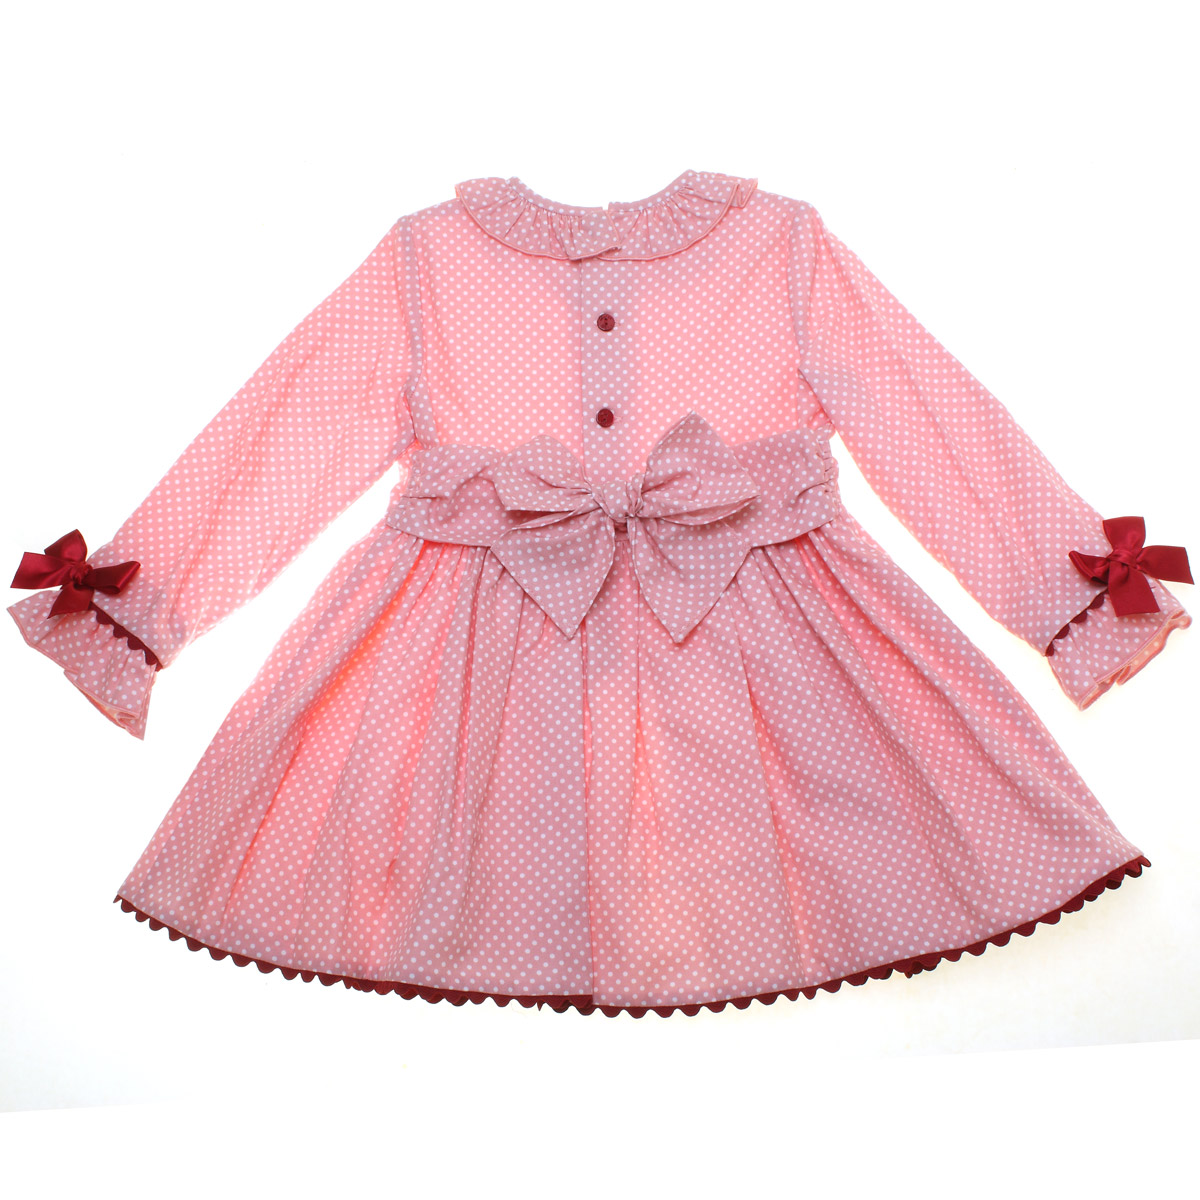 ceb9d6acf Dolce Petit Girls Pink and White Polka Dress With Red Bows and Red ...